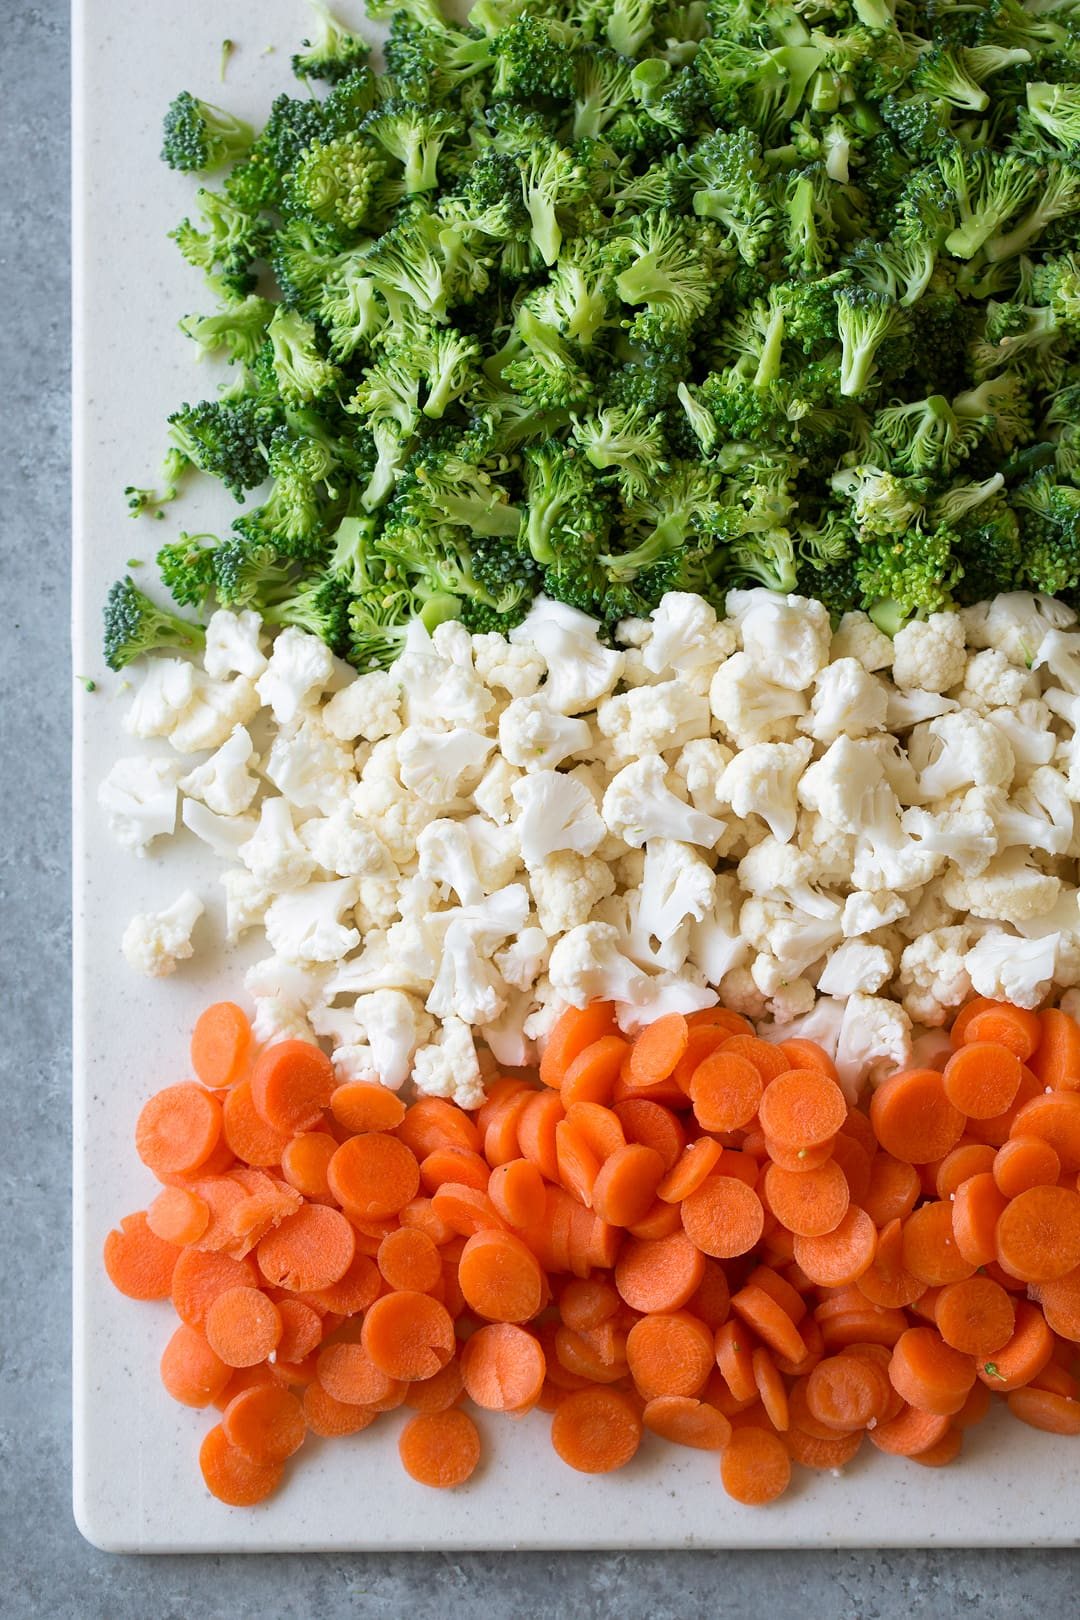 Broccoli Carrot And Cauliflower Coleslaw Salad Cooking Classy